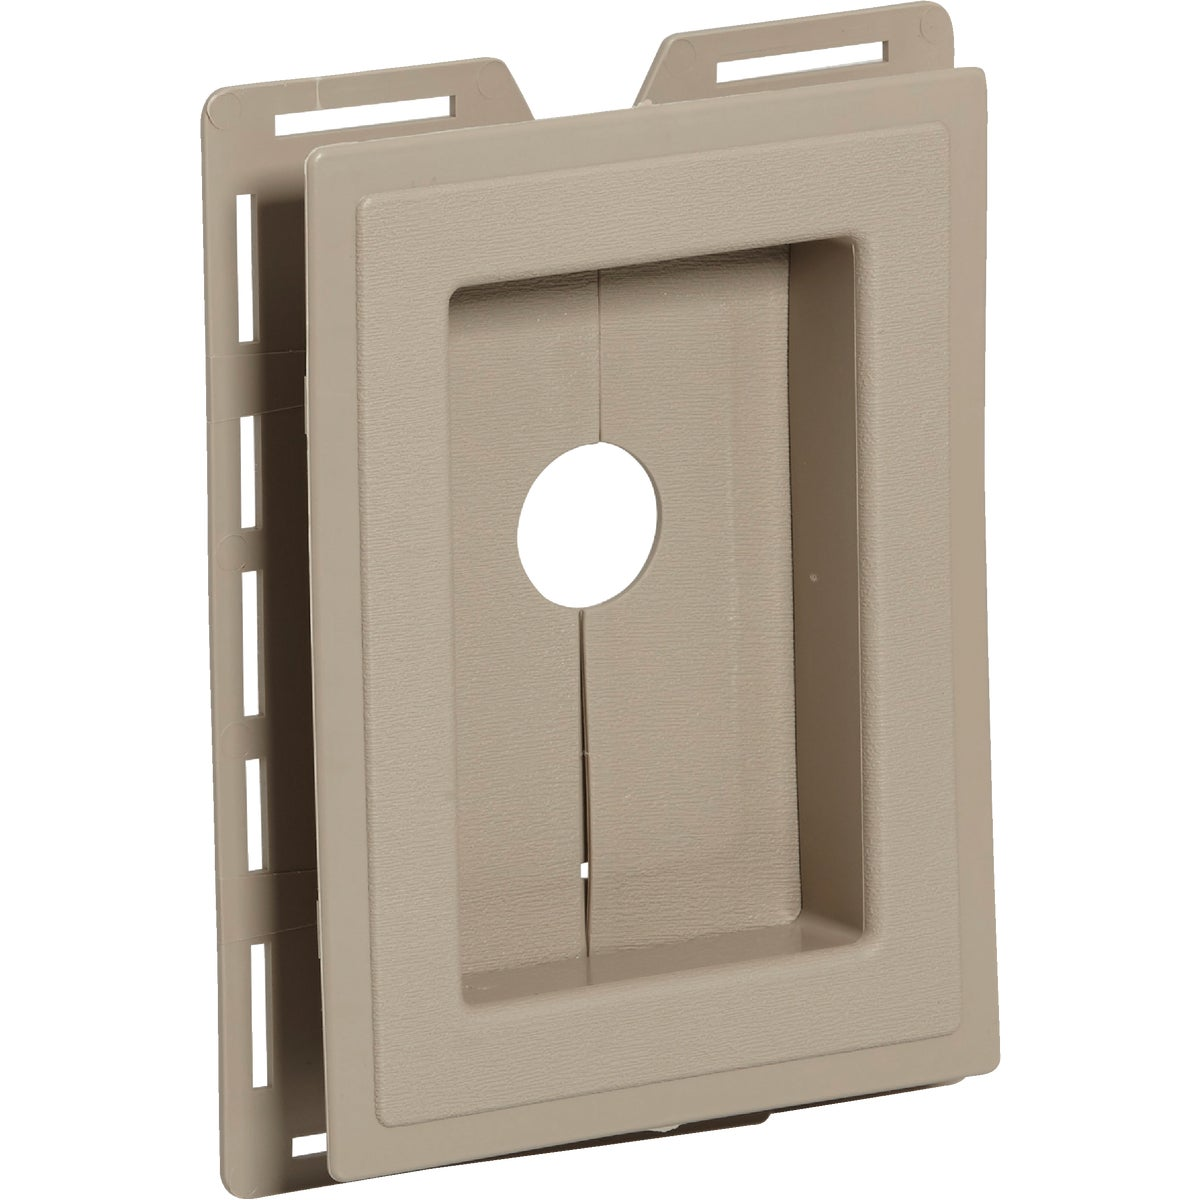 CLAY RECESS J-BLOCK - MBLOCKR PC by Alcoa Home Exteriors